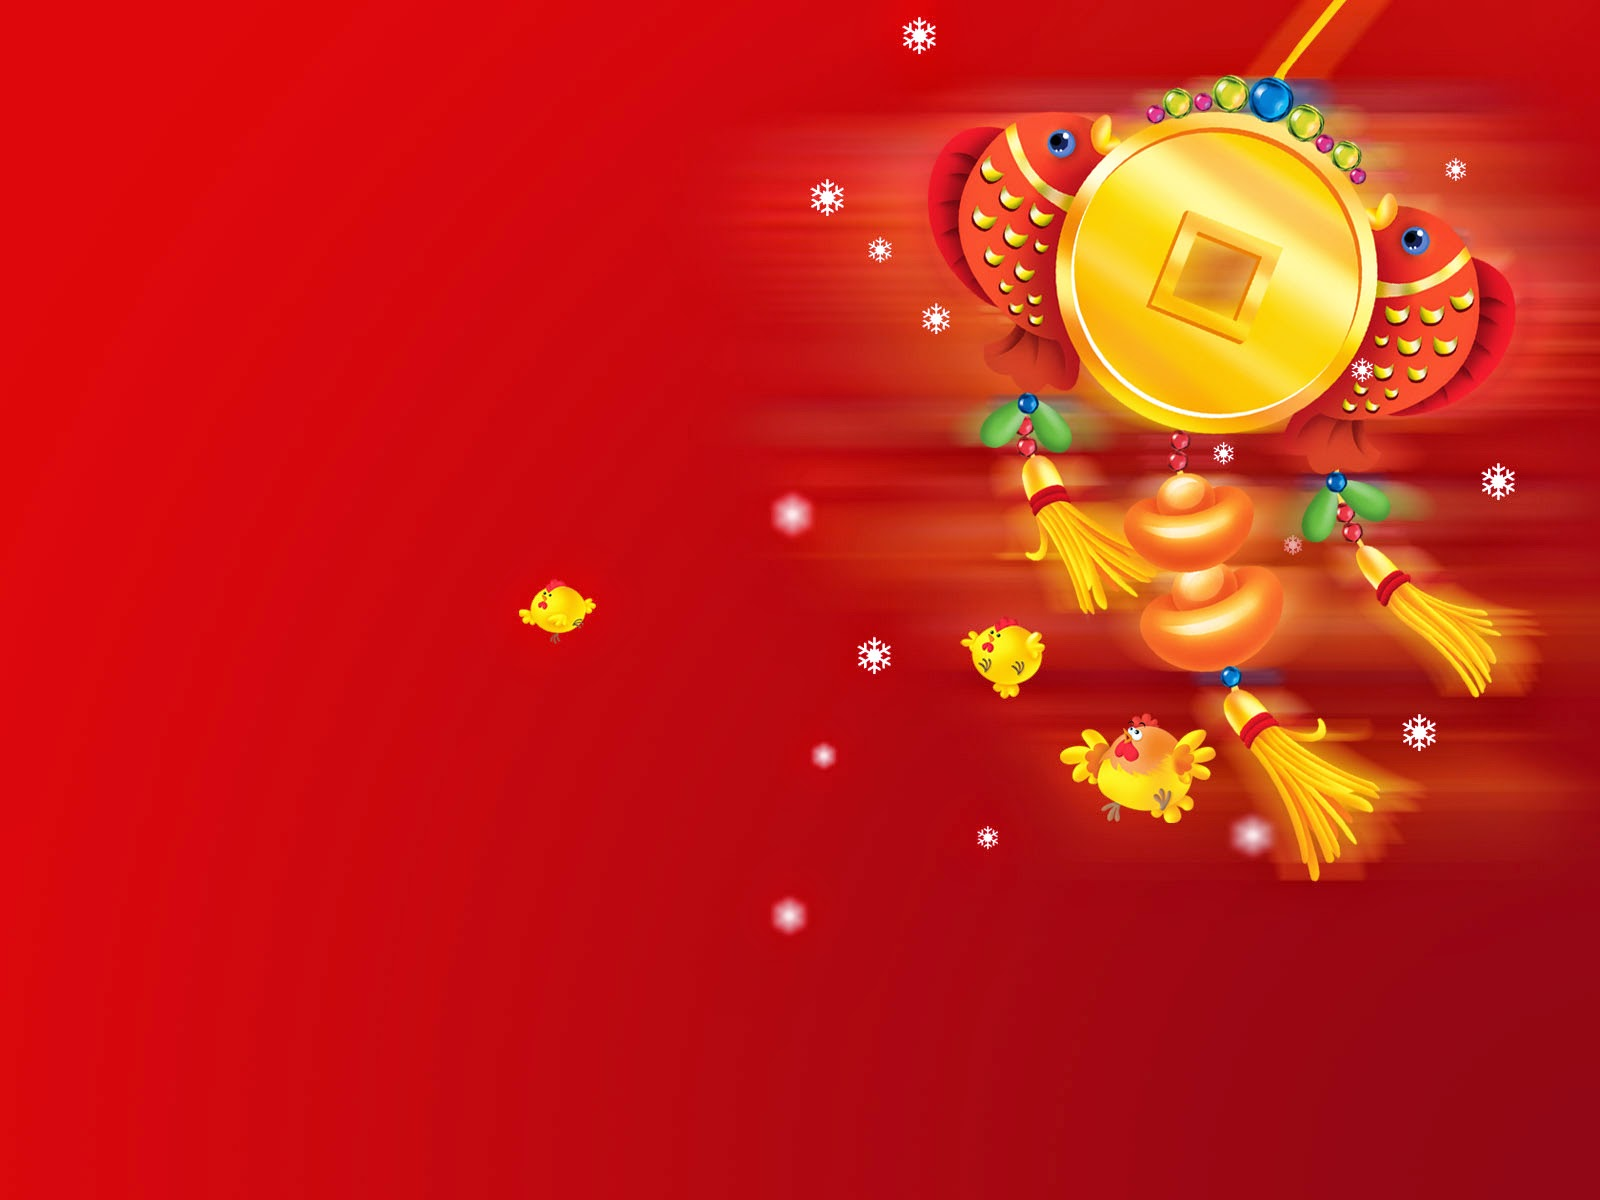 Happy Chinese New Year 2015 The Year of the Sheep Download 1600x1200